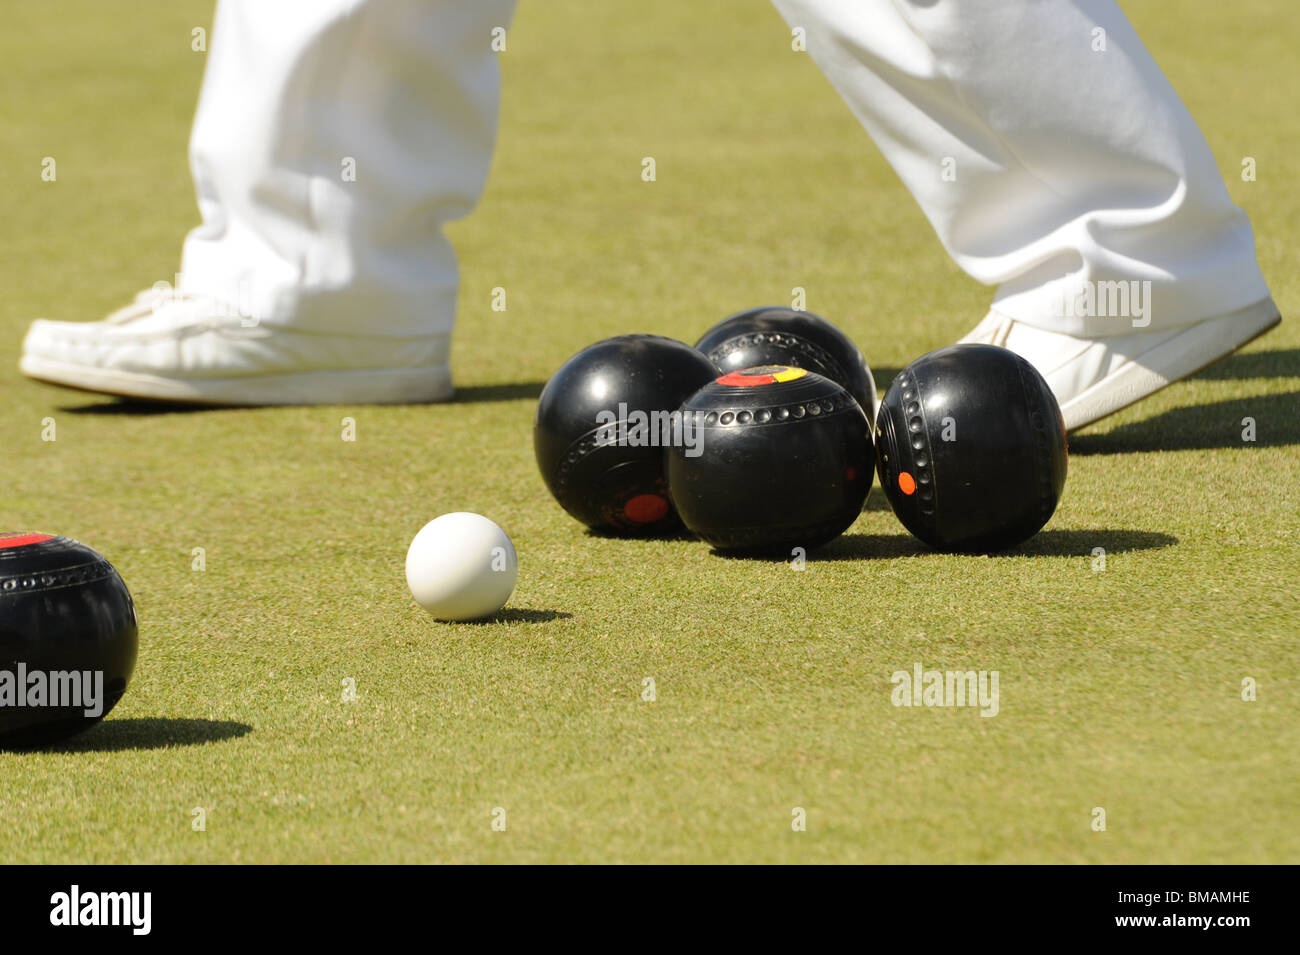 A photograph of lawn bowls with a players feet in the background - Stock Image